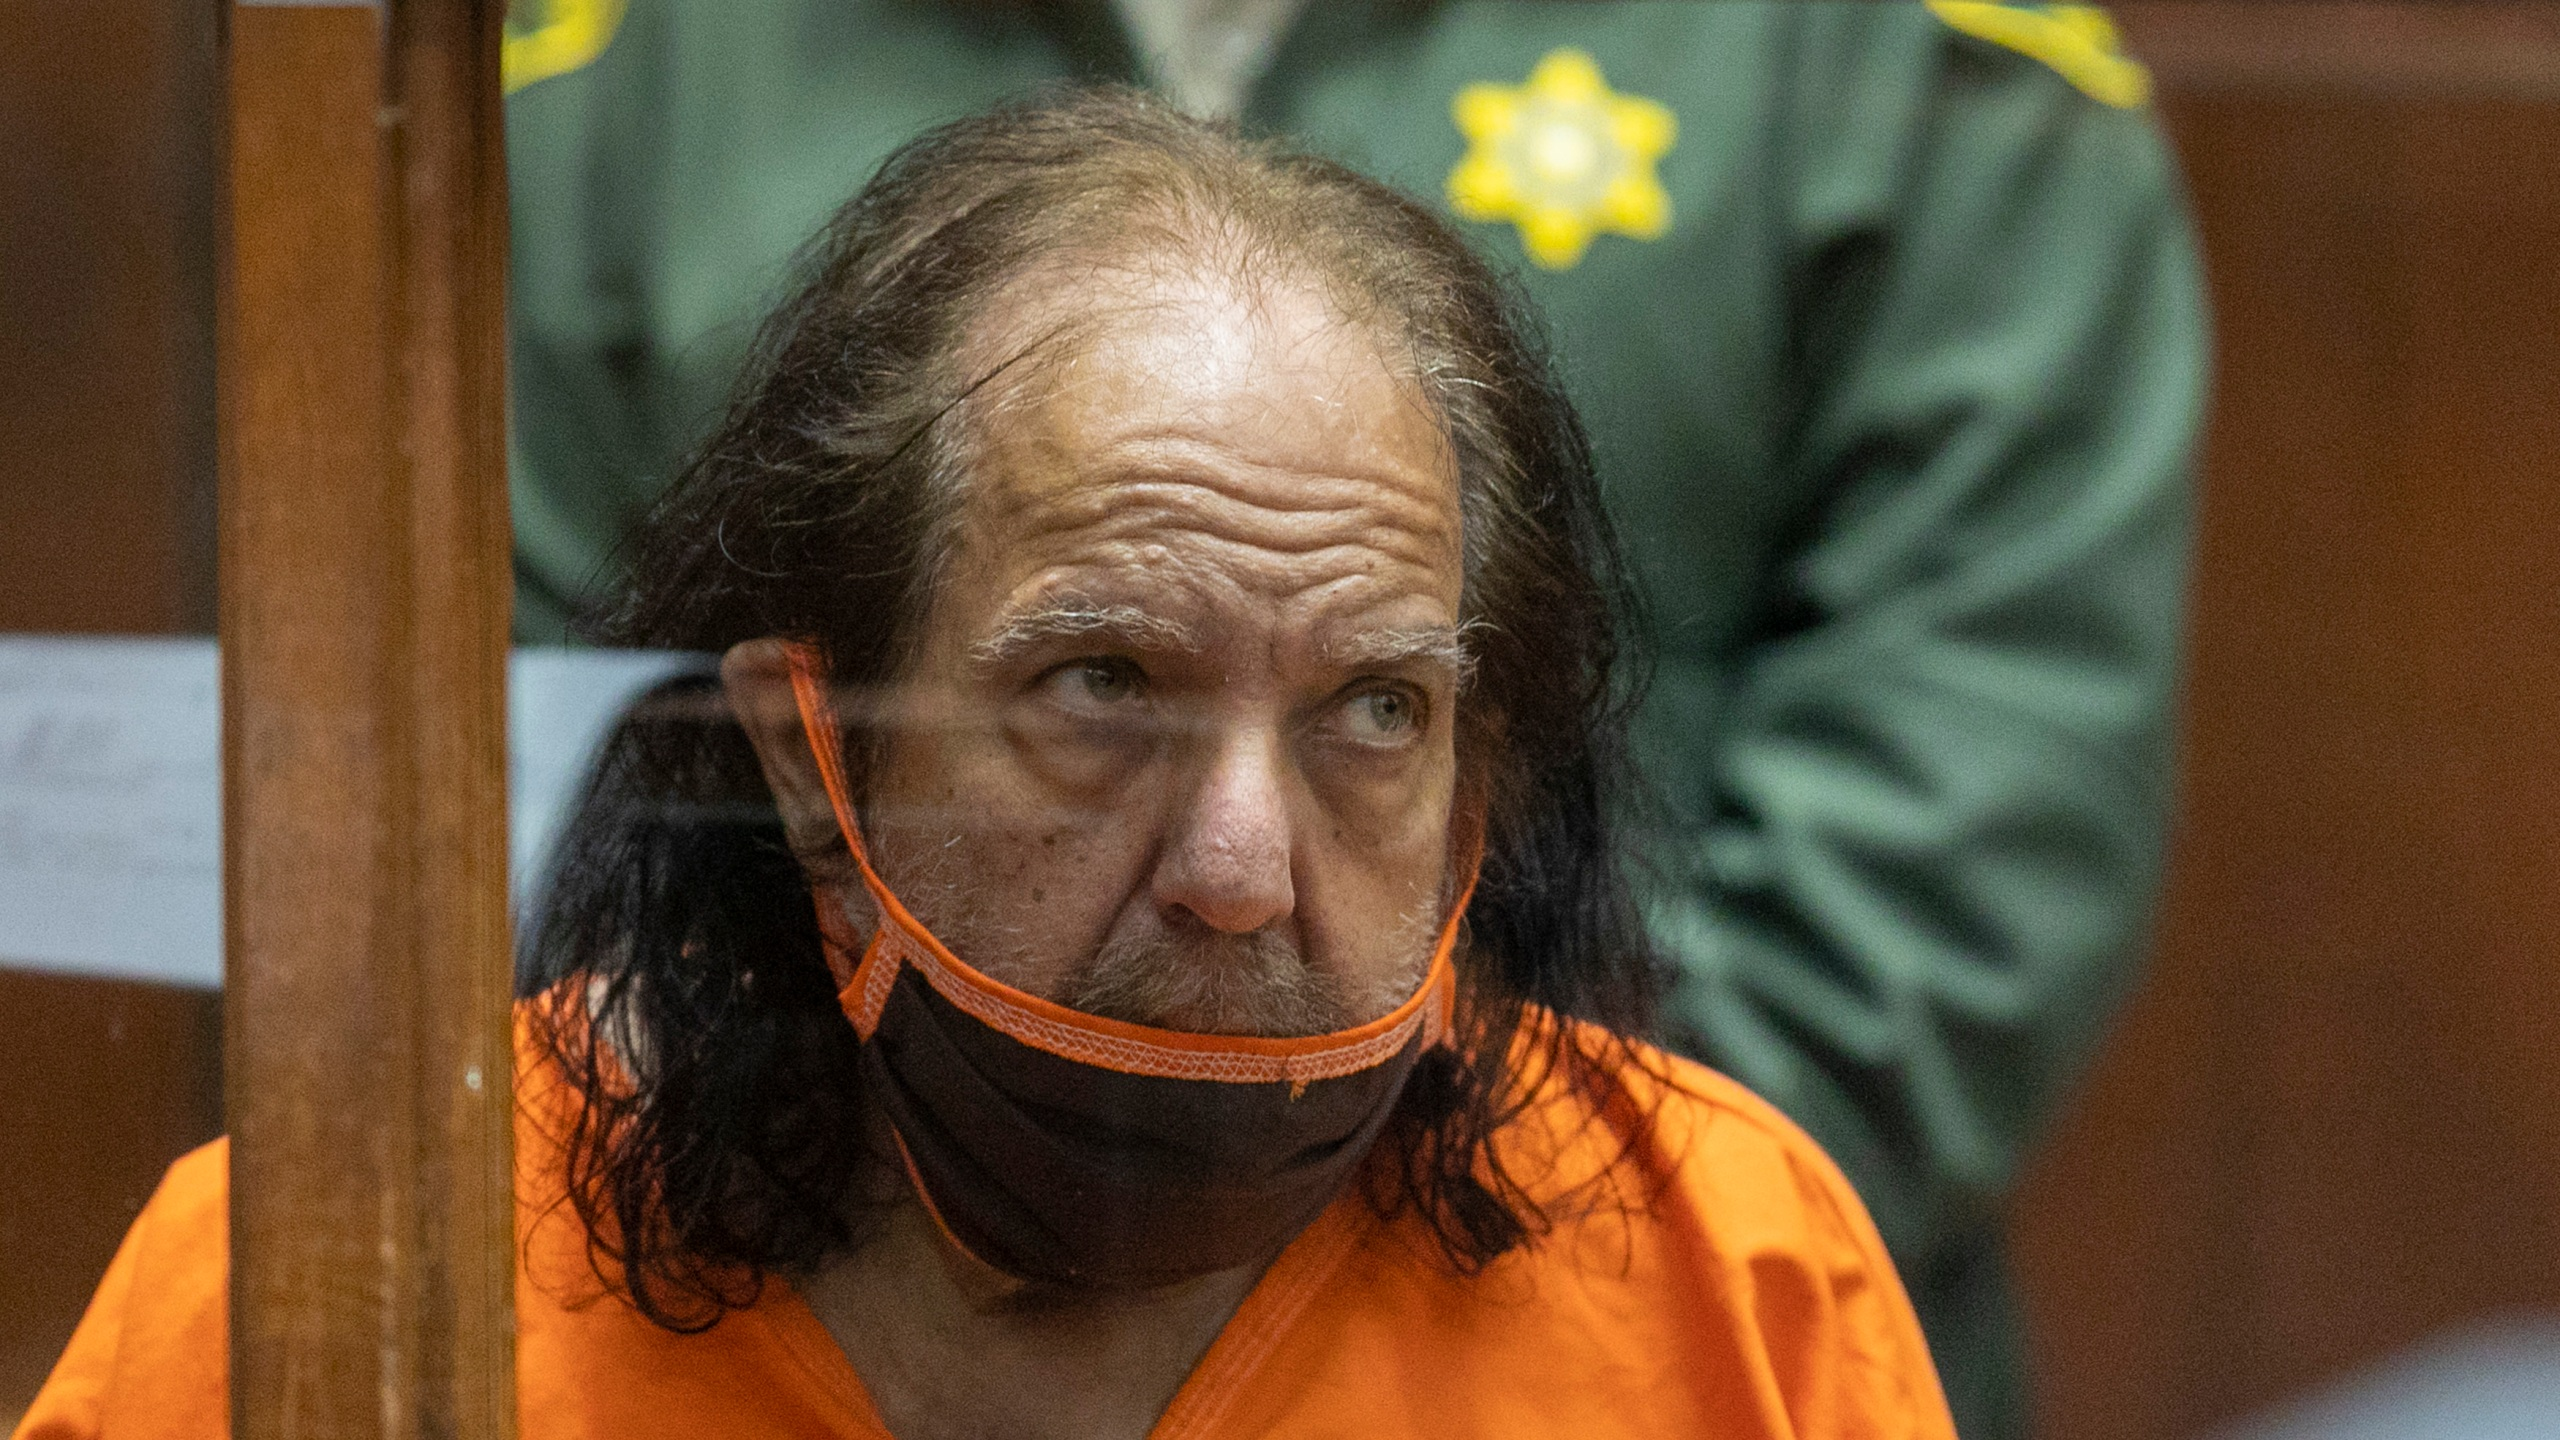 Adult film star Ron Jeremy appears for arraignment on rape and sexual assault charges at Clara Shortridge Foltz Criminal Justice Center on June 26, 2020, in Los Angeles, California. (David McNew/Getty Images)